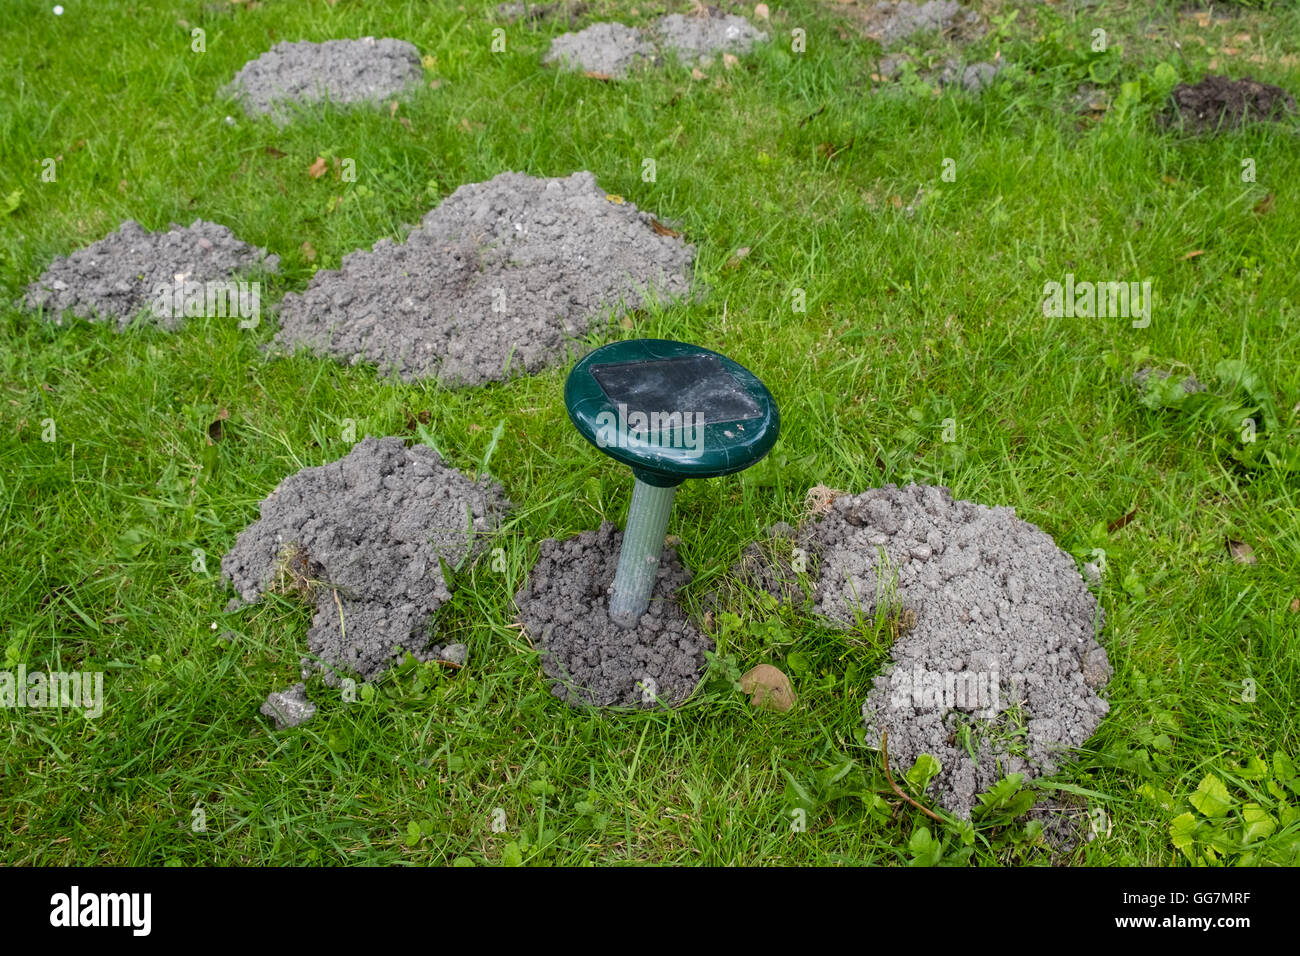 Electronic solar powered noise and vibration device to deter burrowing moles in a garden lawn - Stock Image